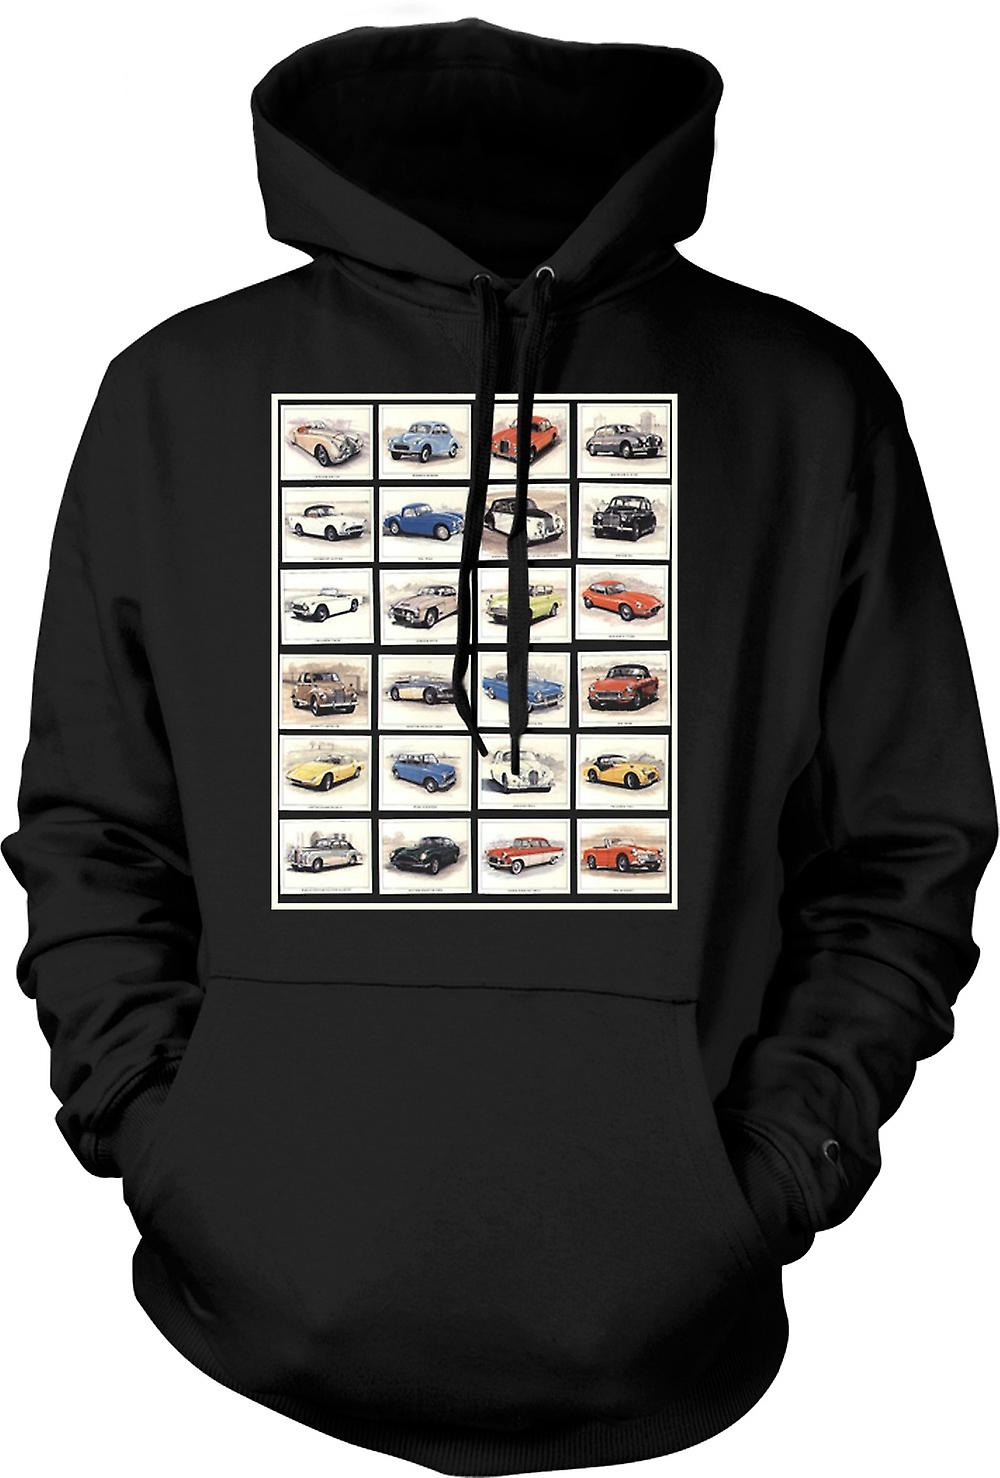 Enfant Sweat Capuche - Classic Motor Car Collage - Affiche